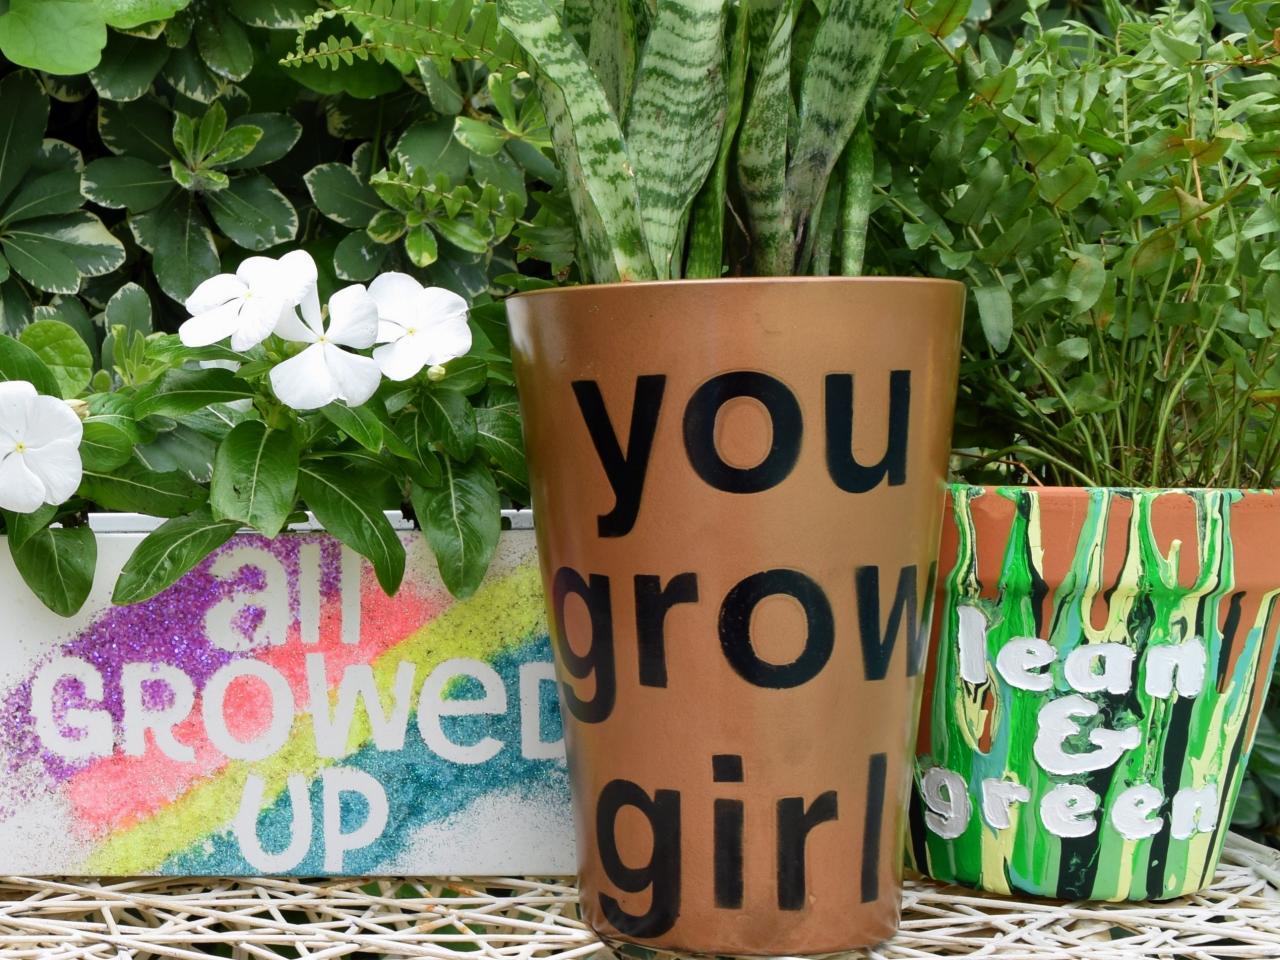 Unique Outdoor Flower Pots 3 Ways To Make Flower Pots With Words How Tos Diy